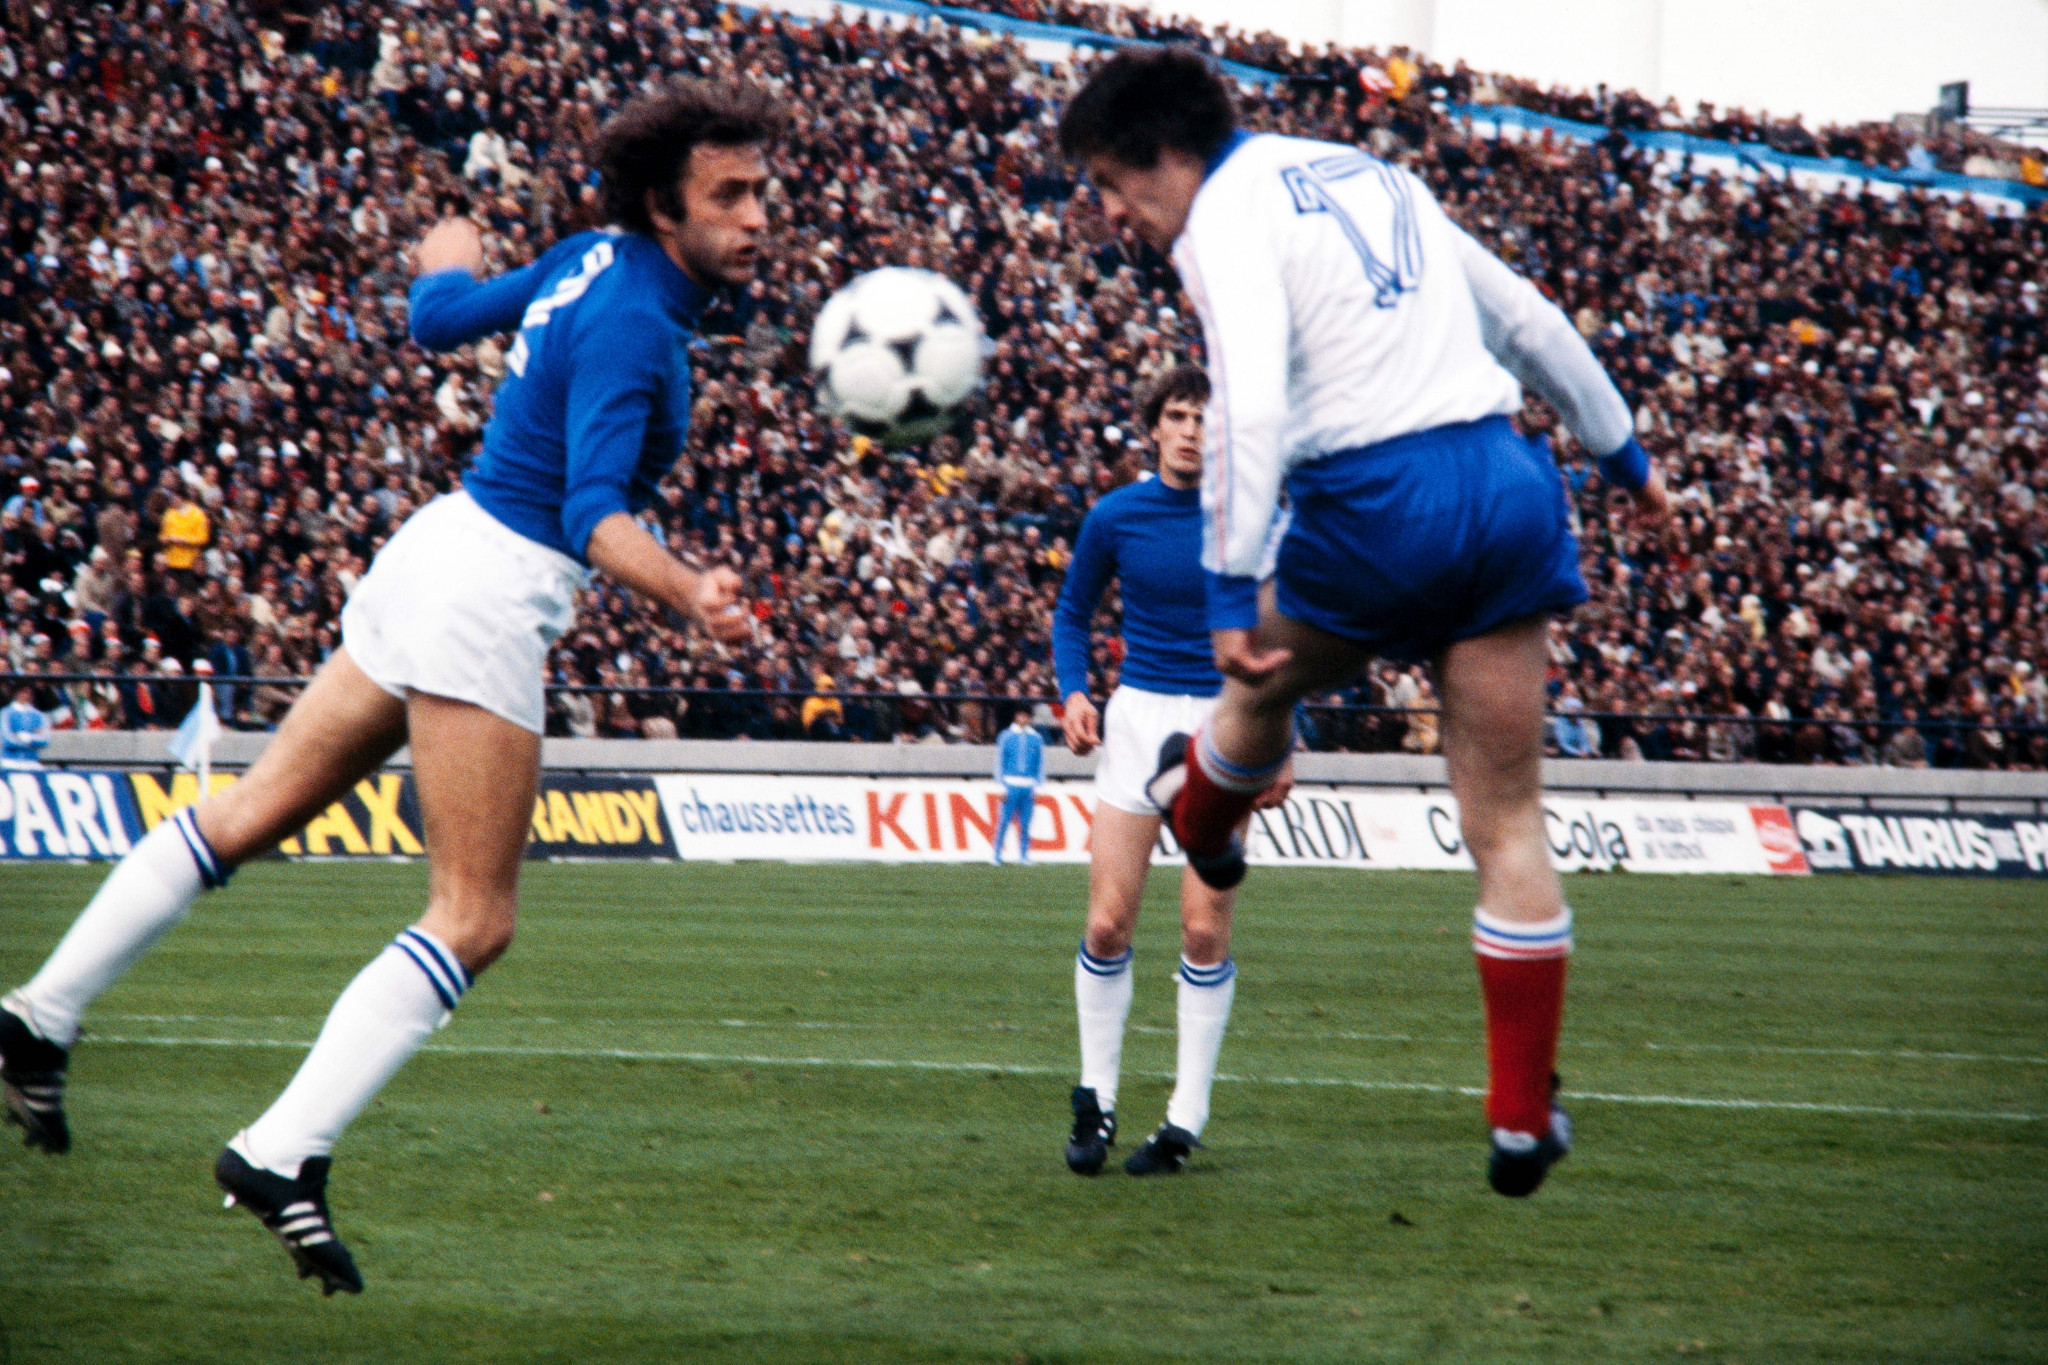 Former Italy footballer Bellugi has legs amputated after COVID-19 complications